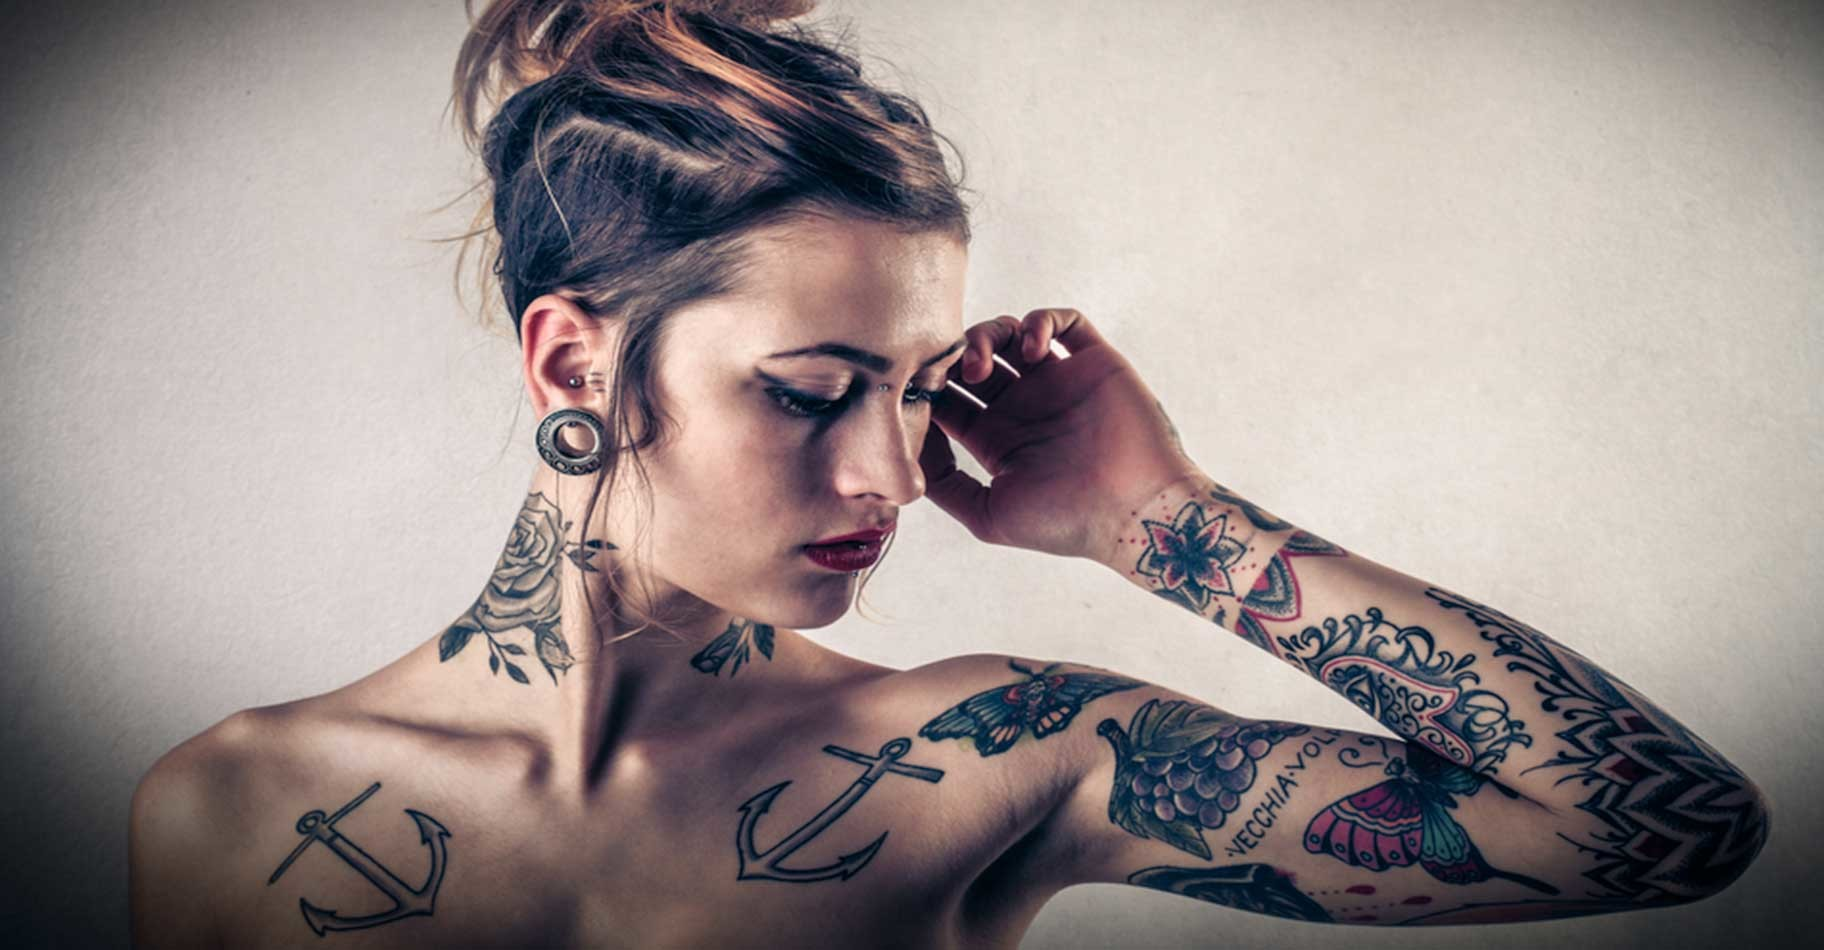 tattoos and its adverse effects